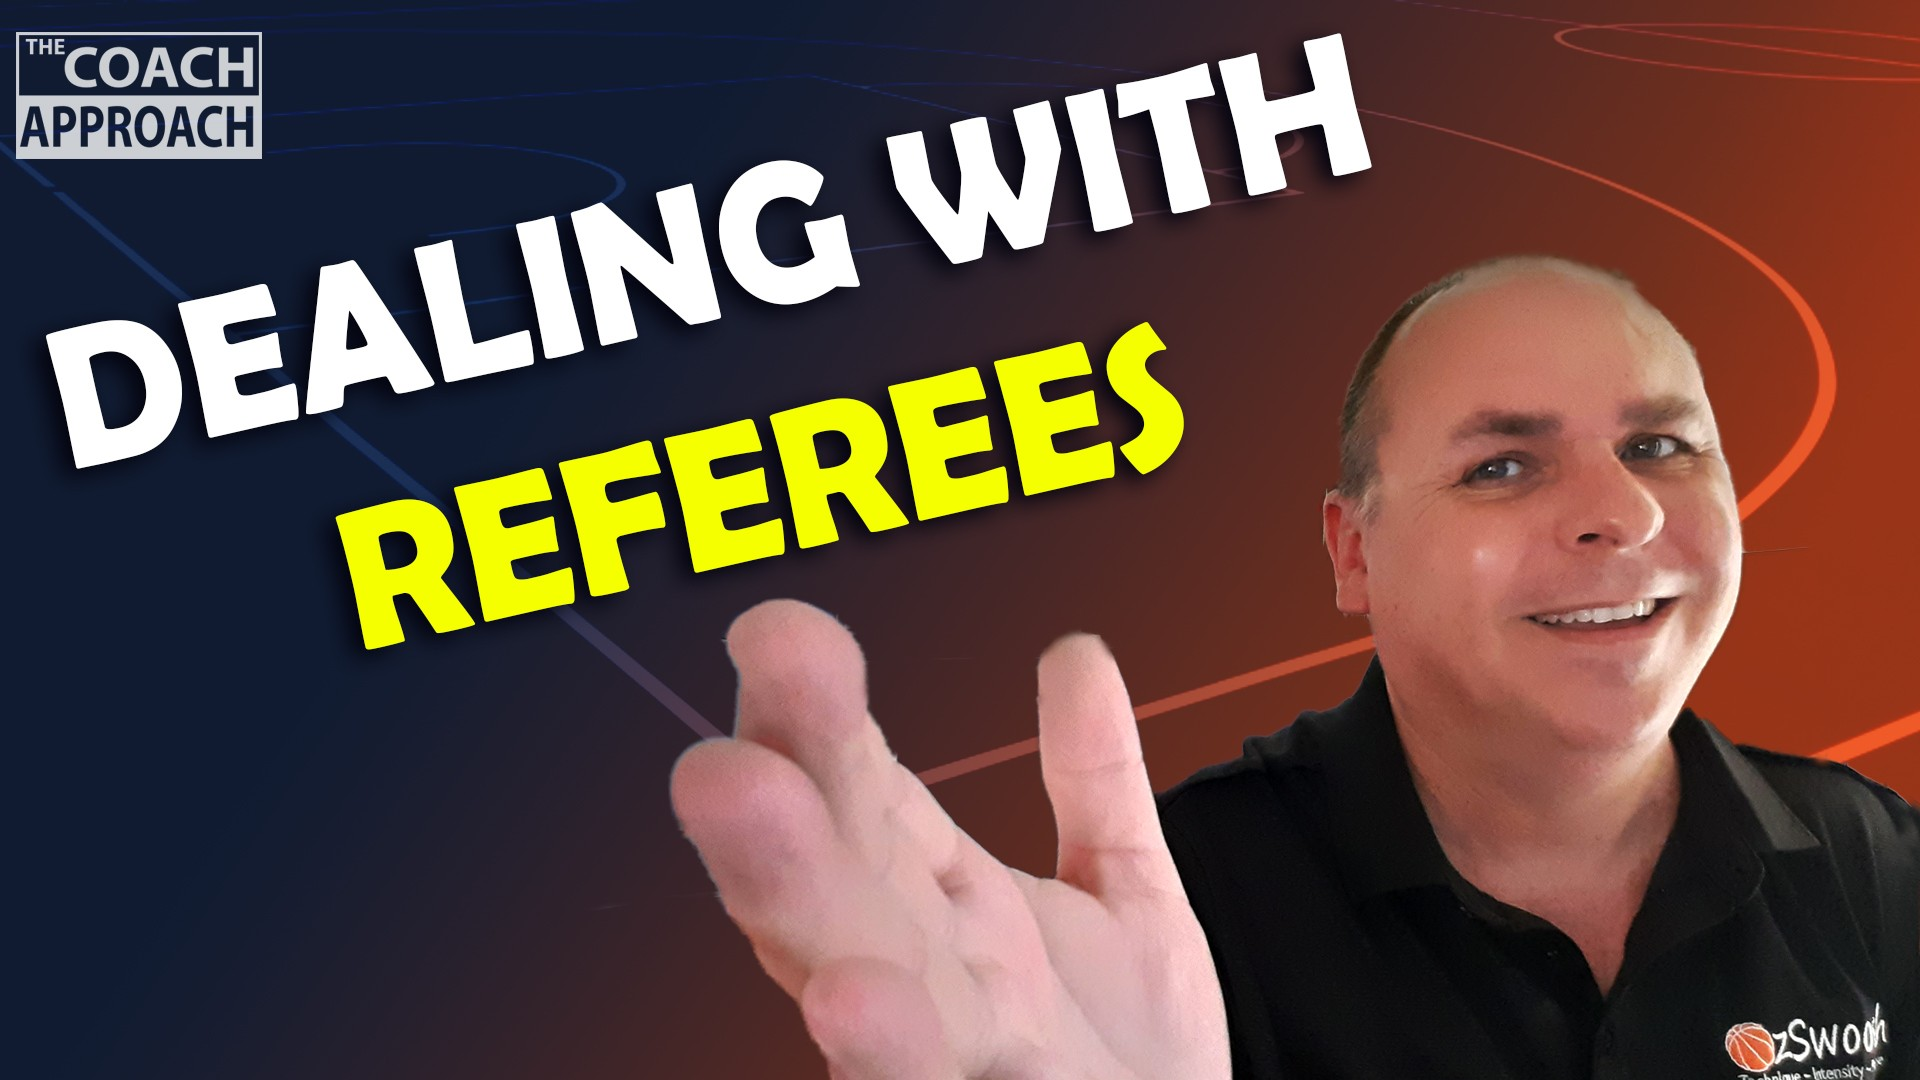 Building effective relationships with referees for basketball coaches